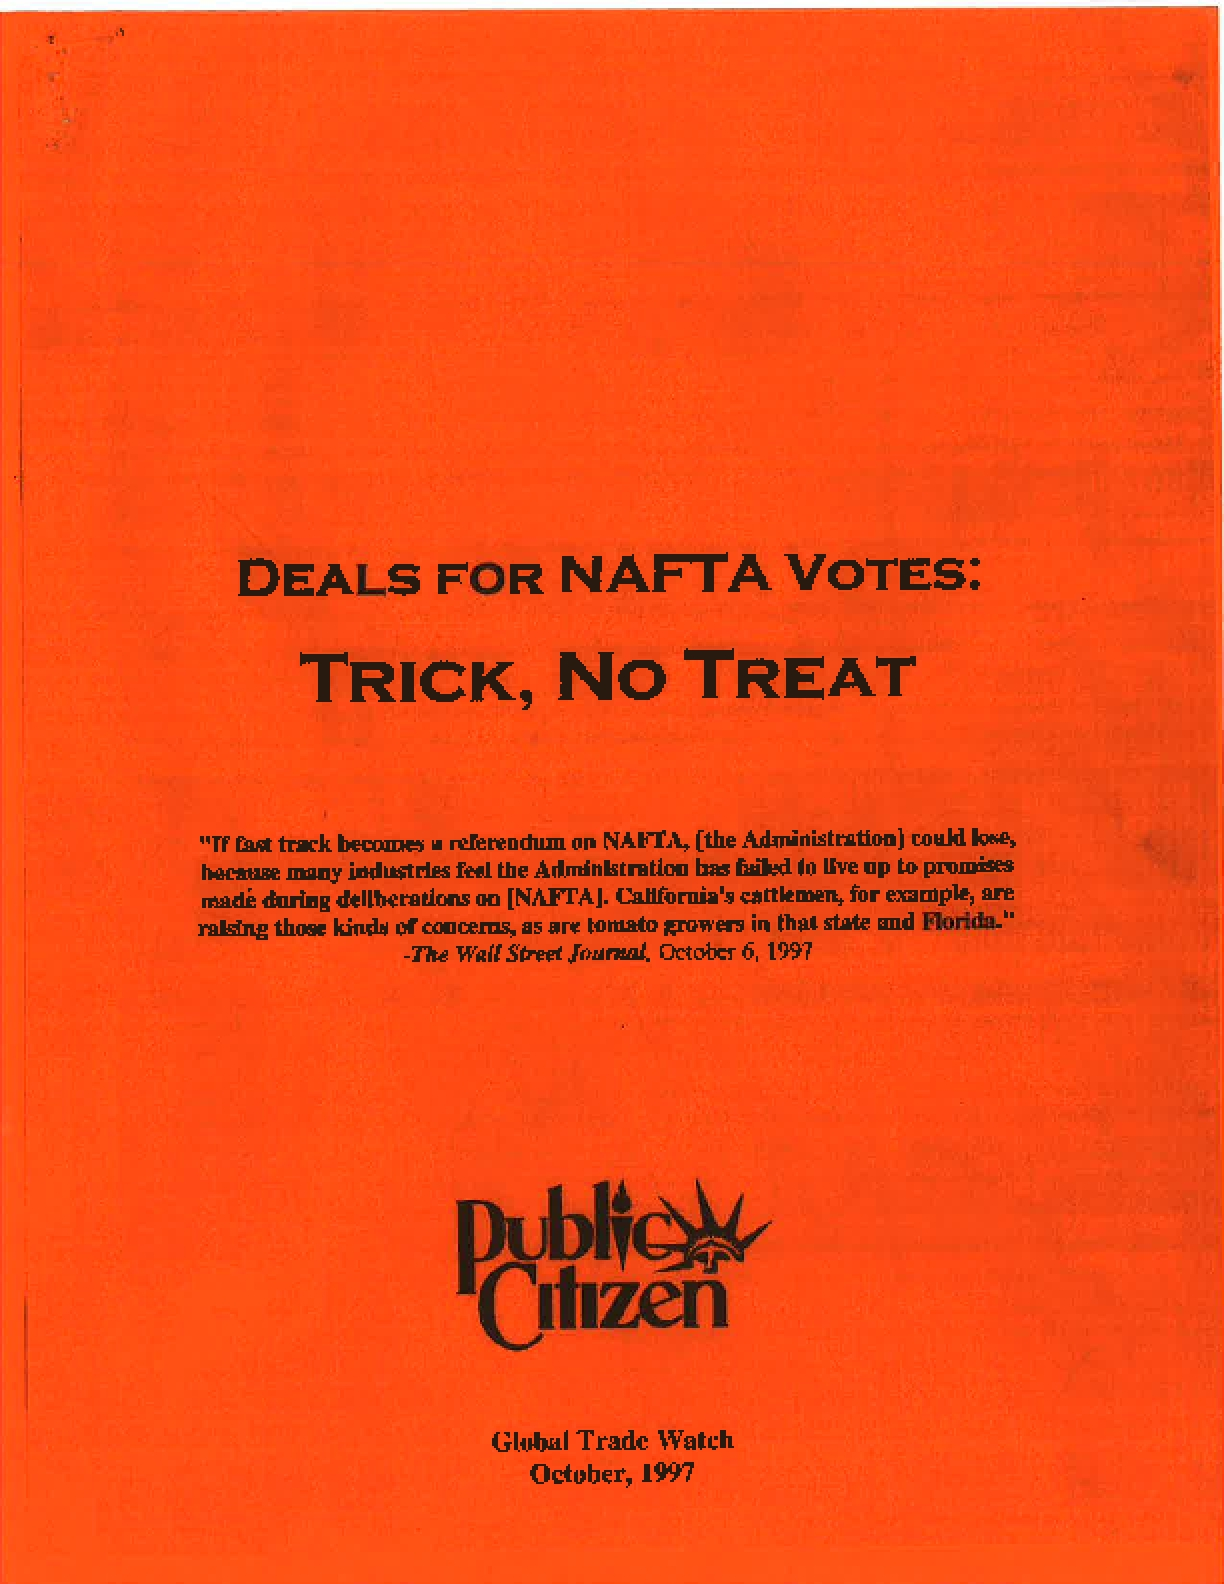 Deals for NAFTA Votes: Trick, No Treat